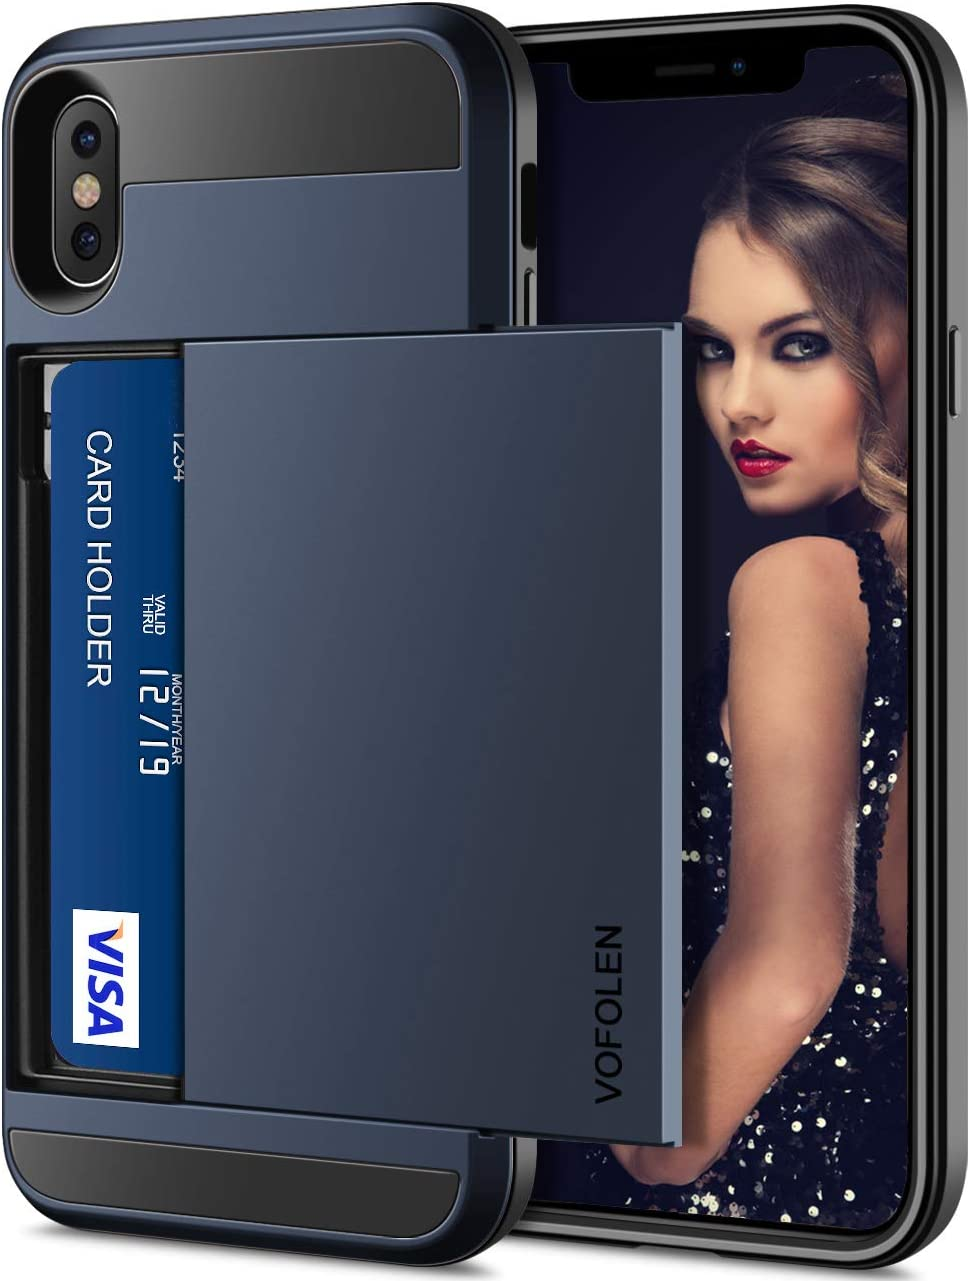 Vofolen Case for iPhone Xs Max Case Wallet Card Holder Sliding Cover Credit Card Slot ID Pocket Dual Layer Protective Hard Shell Hybrid TPU Bumper Armor Case for iPhone Xs Max 10S Max (Navy)